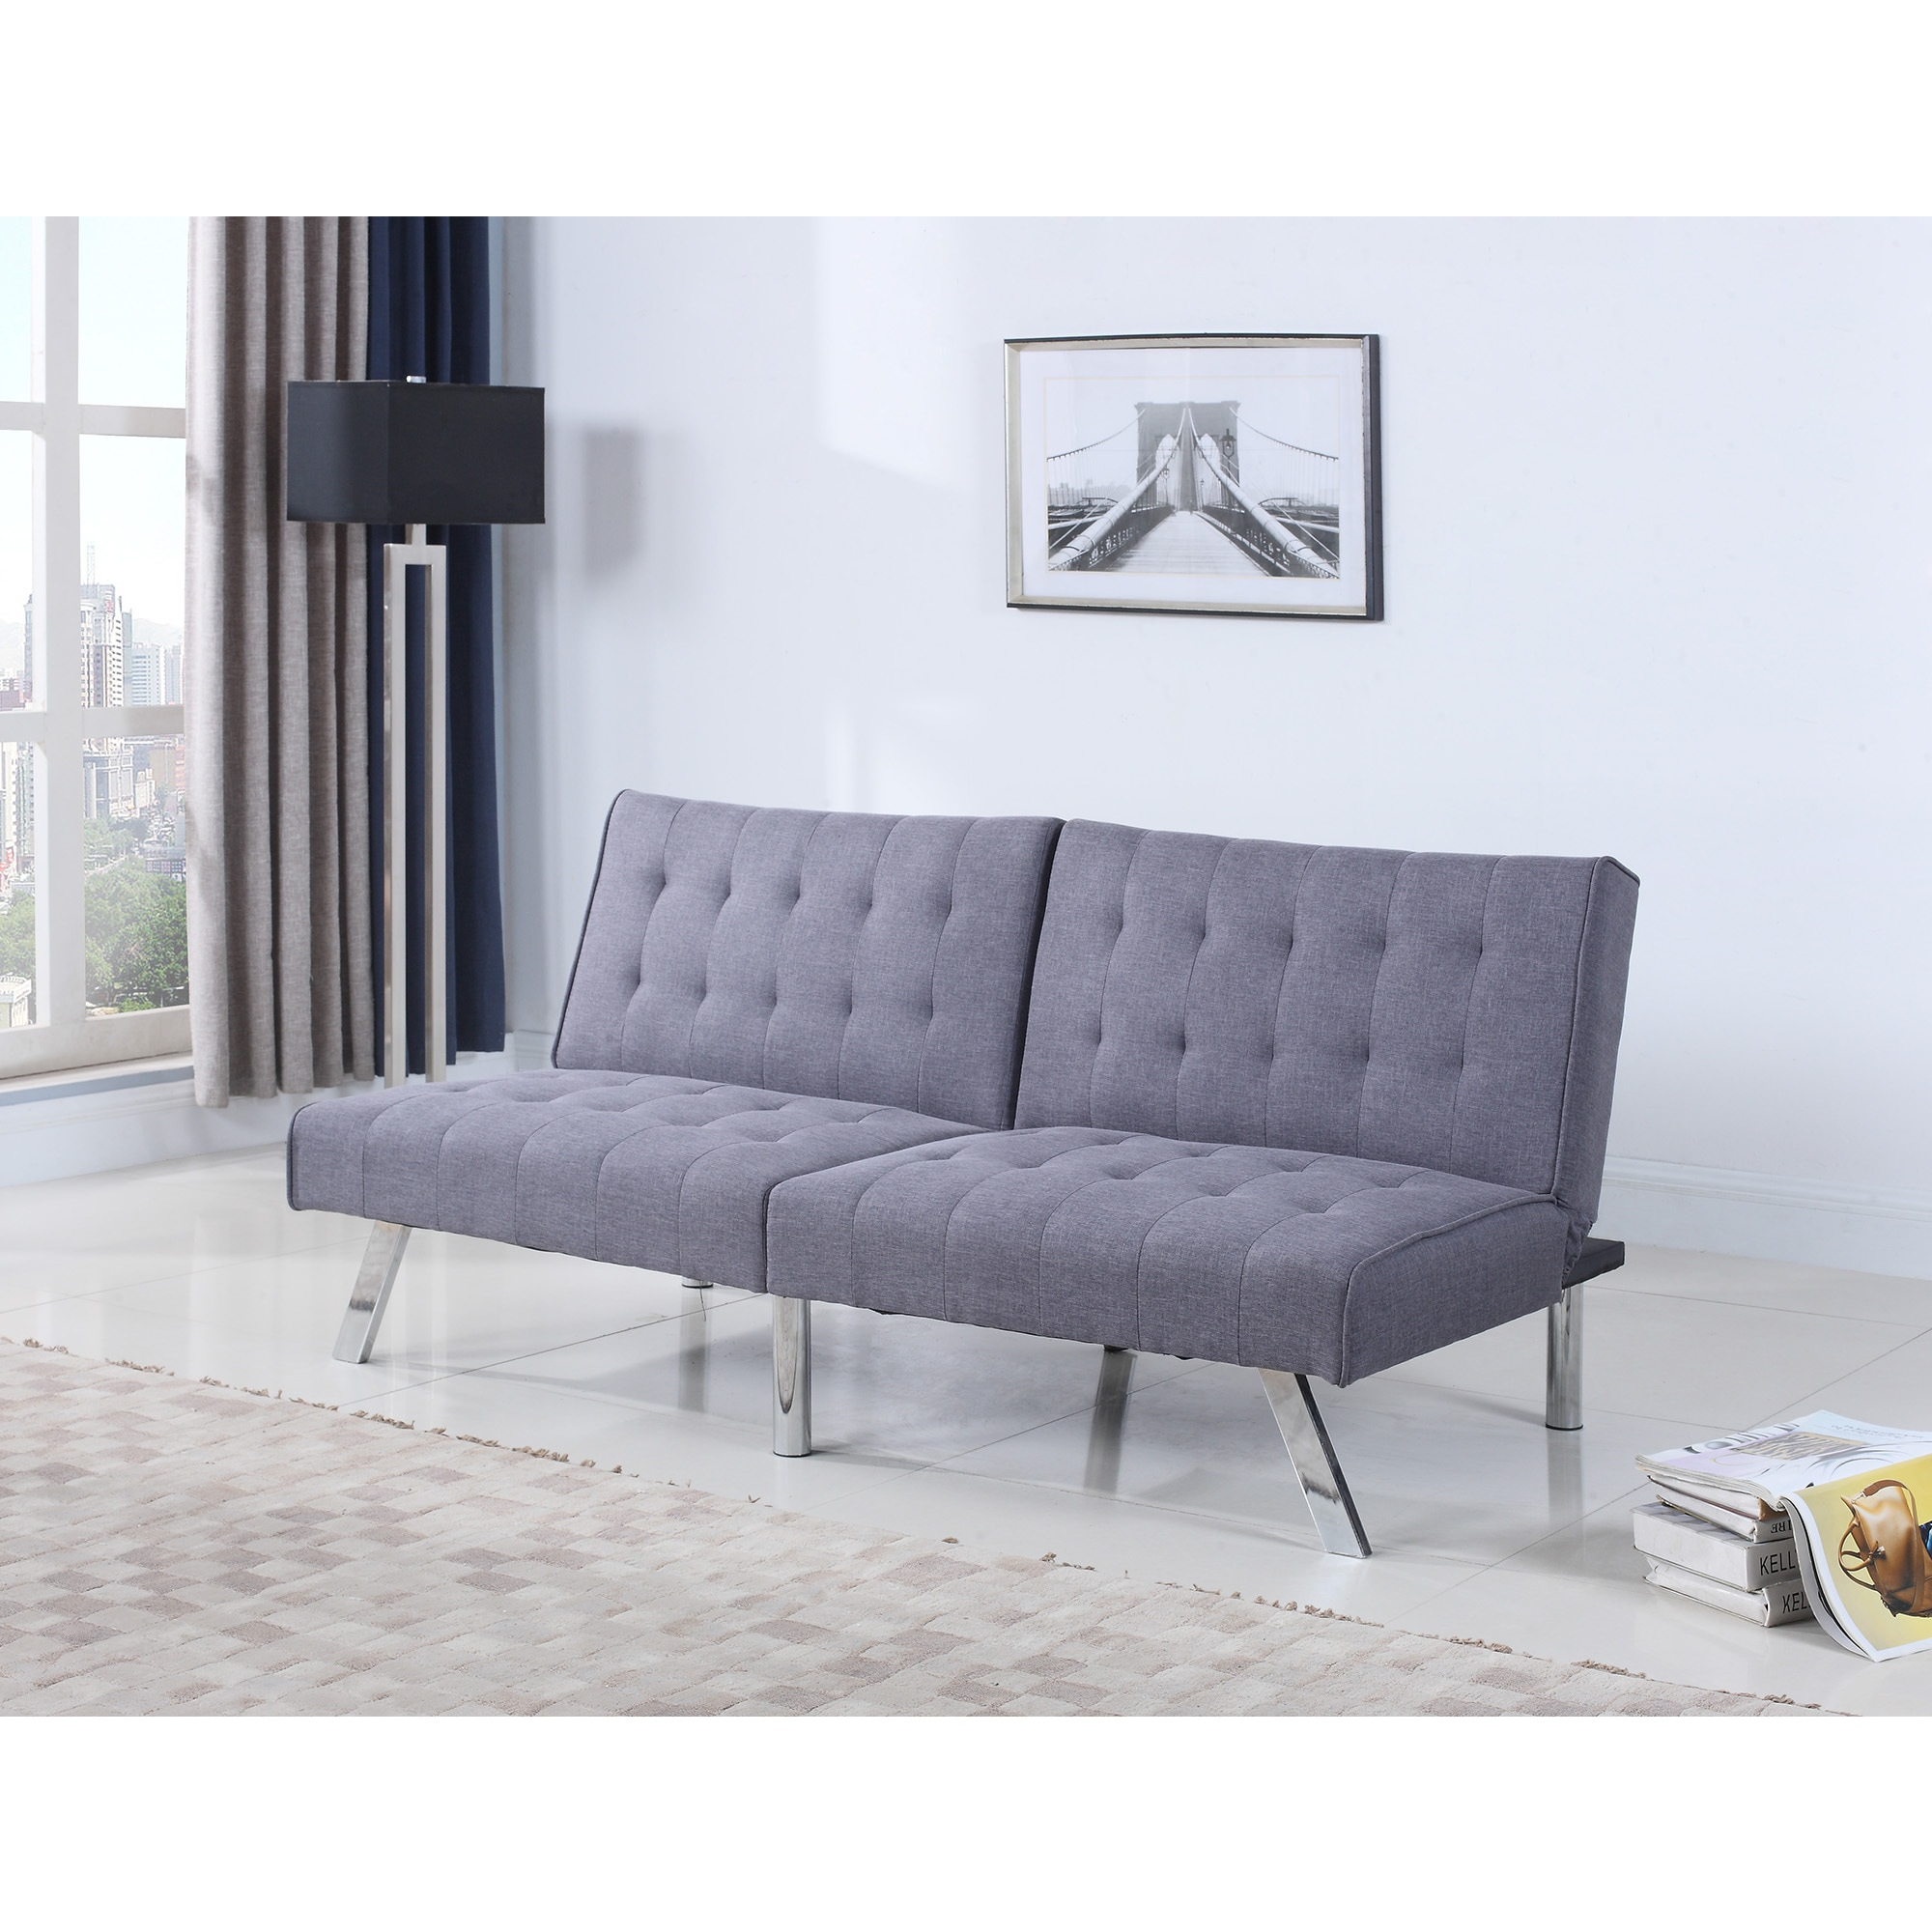 Best Master Furniture P09 Contemporary Grey Linen Adjustable Sofa Bed Futon (P09 Gray Linen)